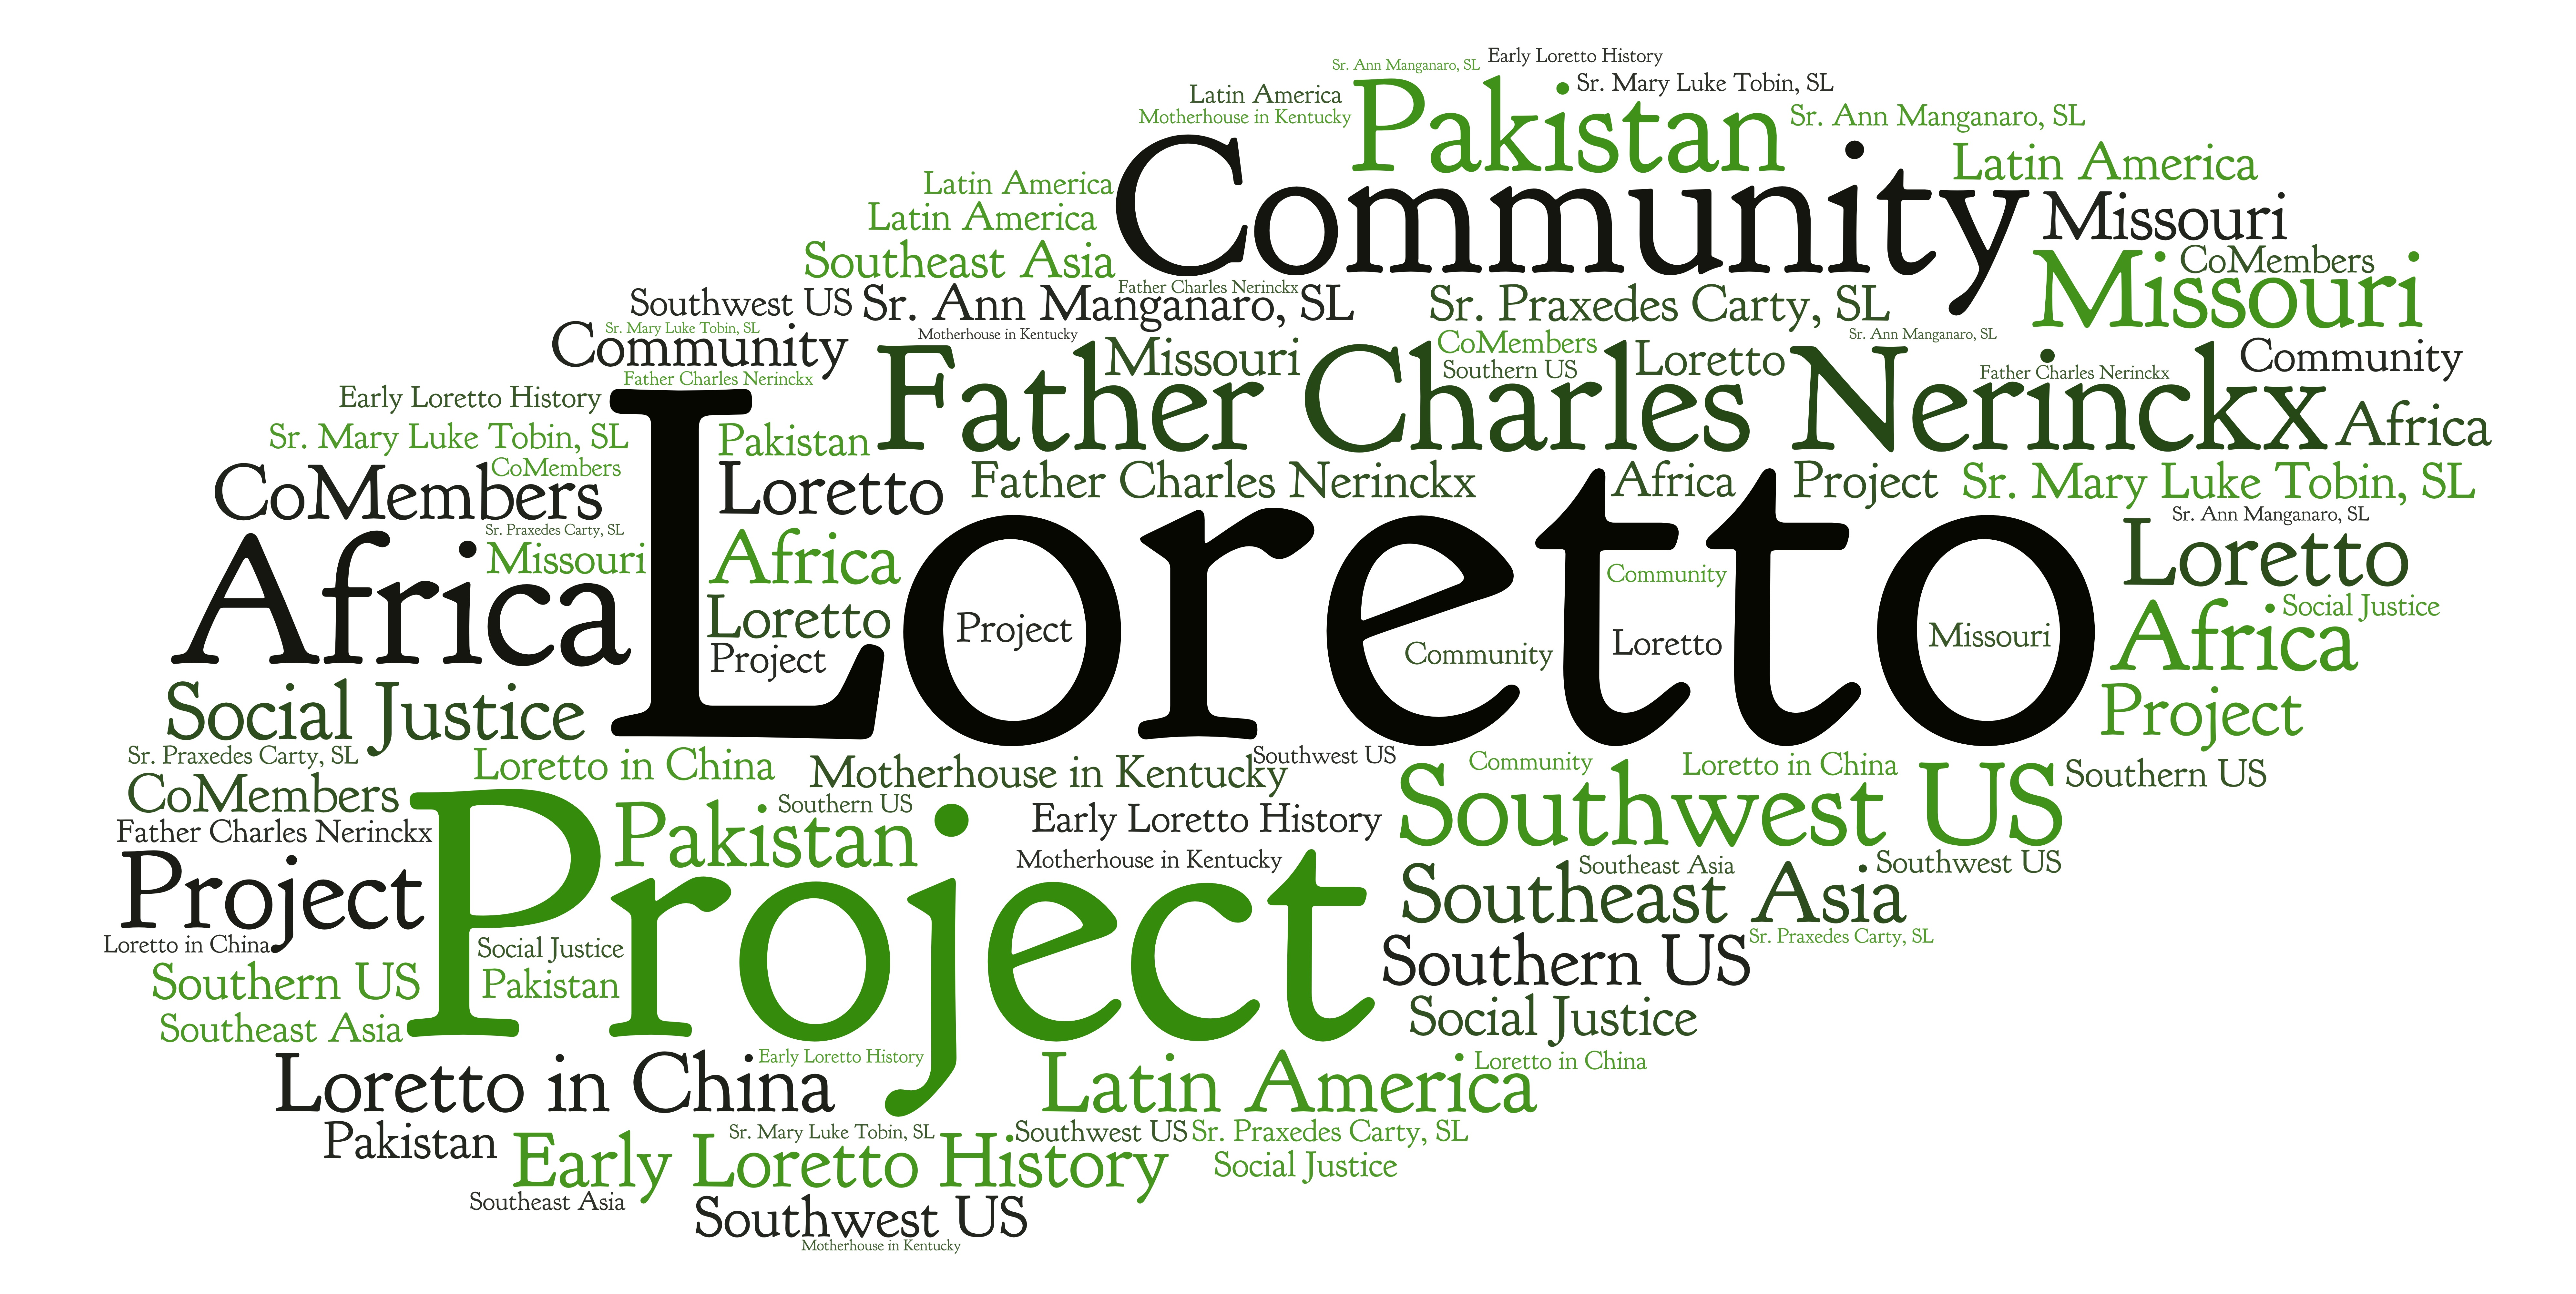 Wordle image of words related to Loretto Project Packets